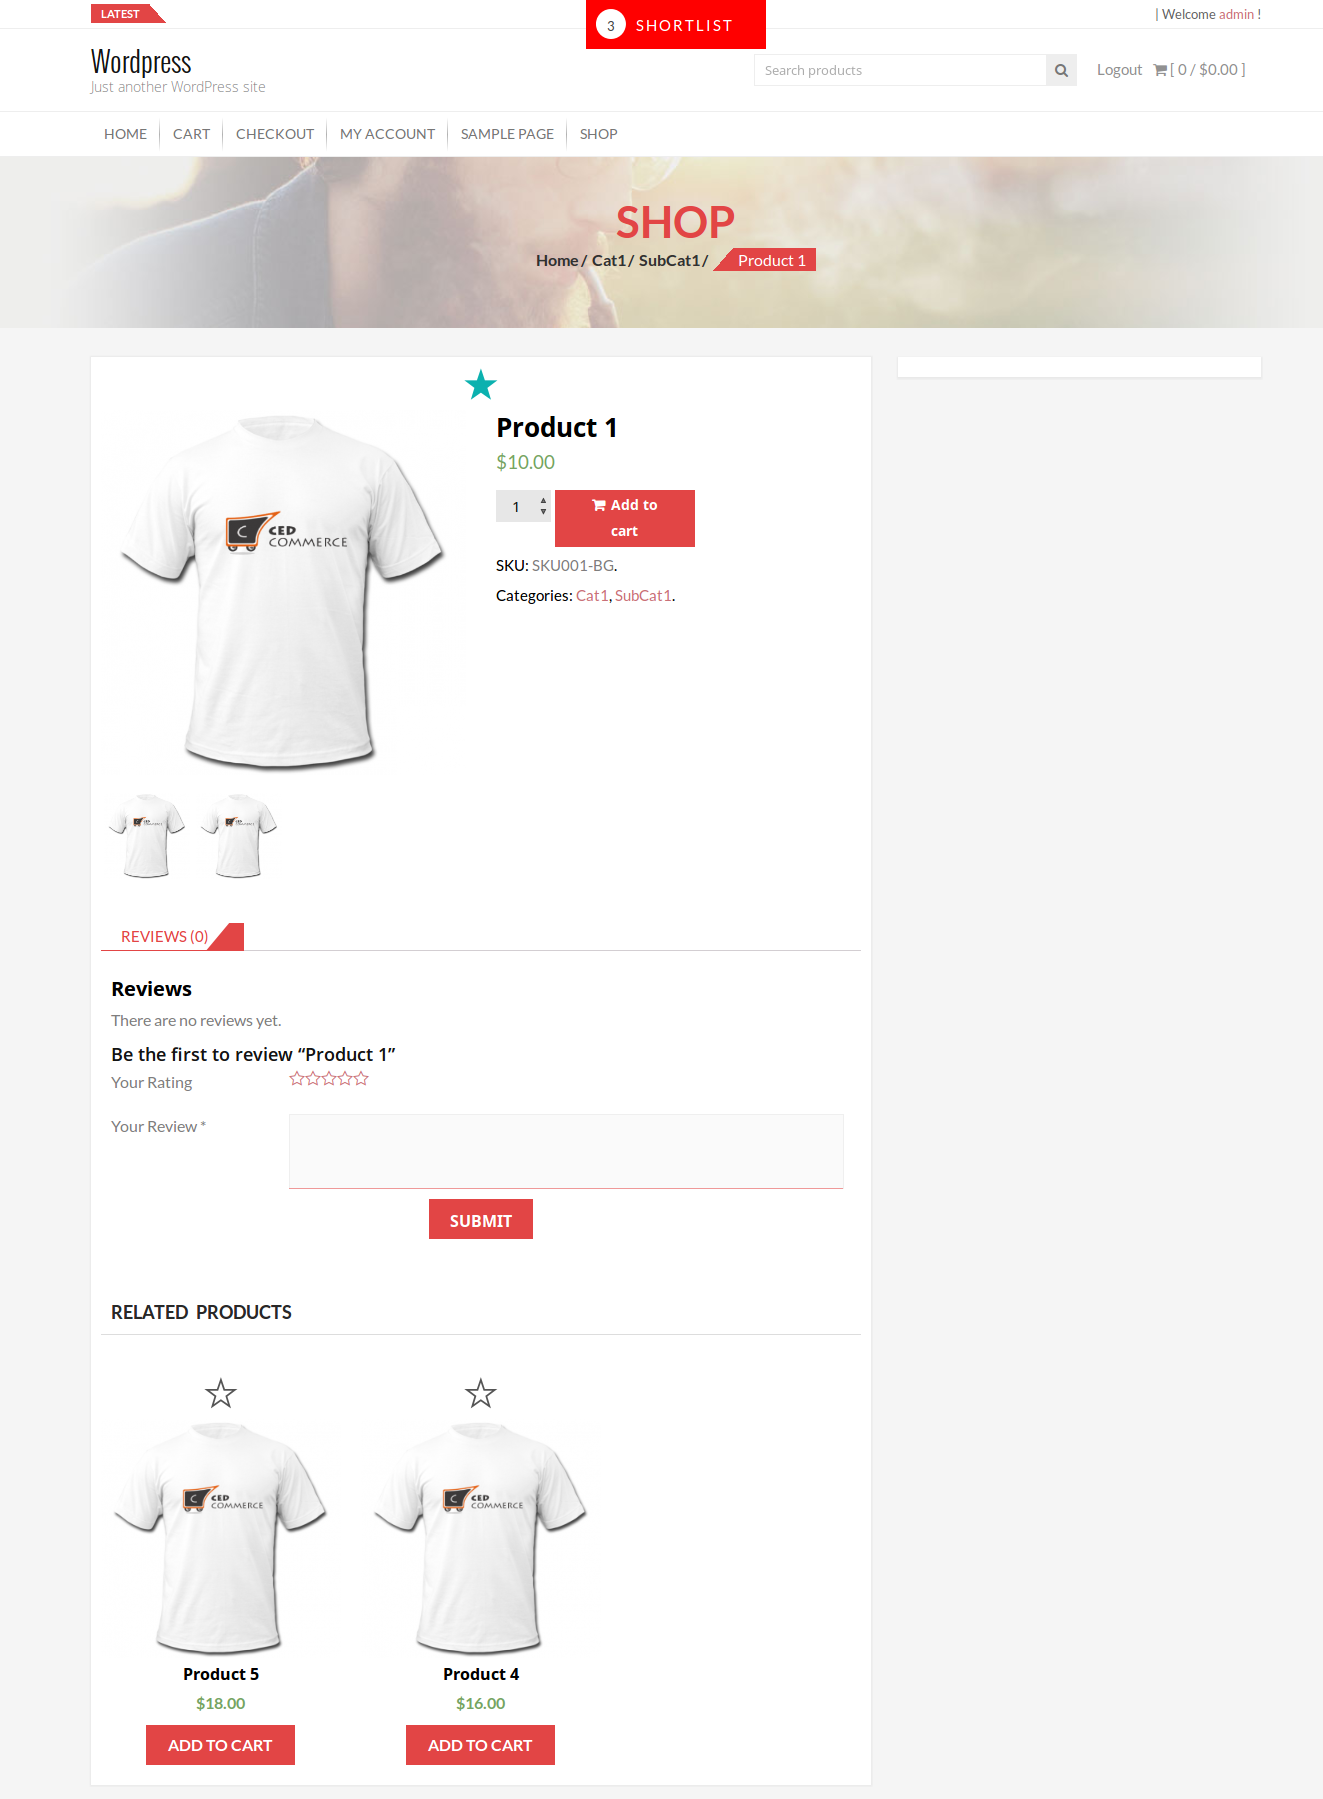 Shortlist at product detail page